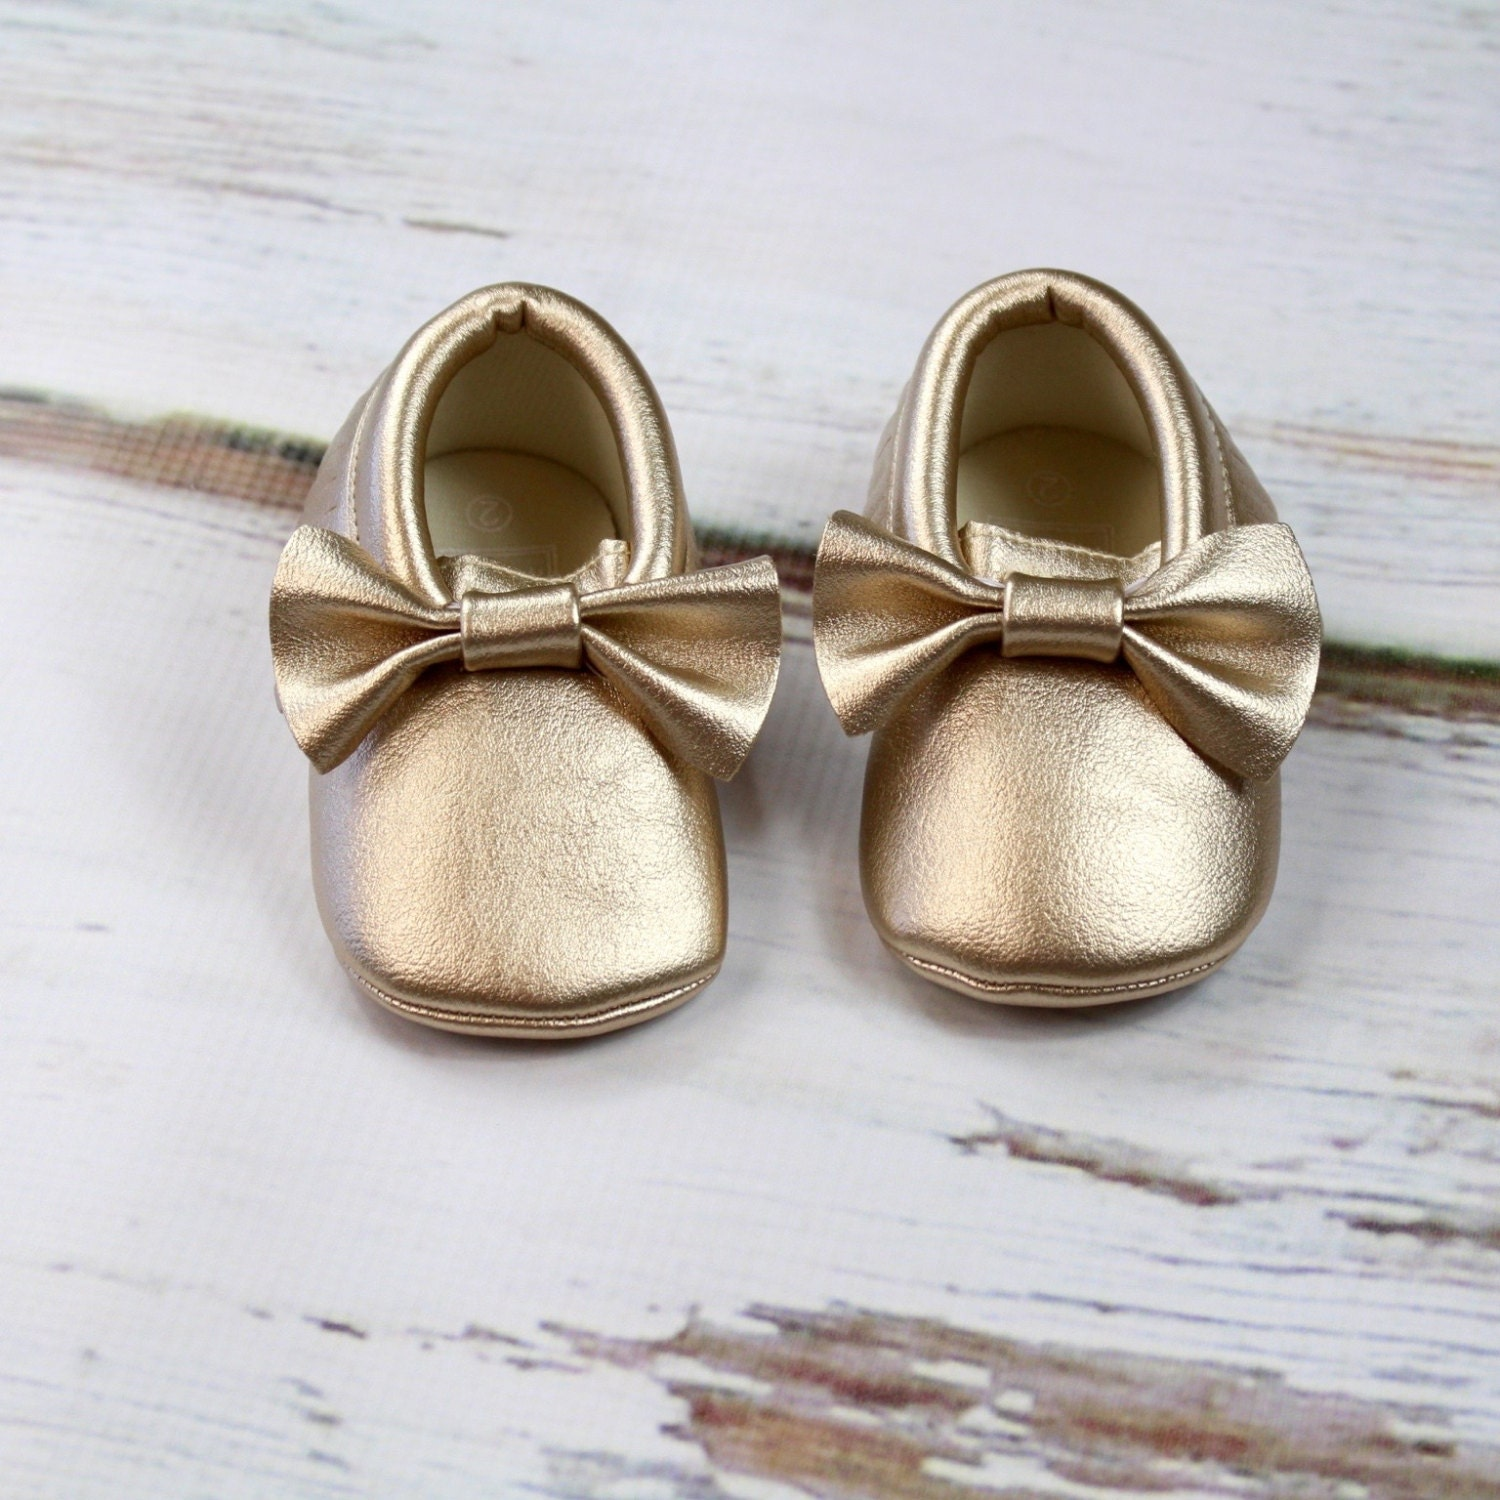 Find great deals on eBay for baby moccasins. Shop with confidence.